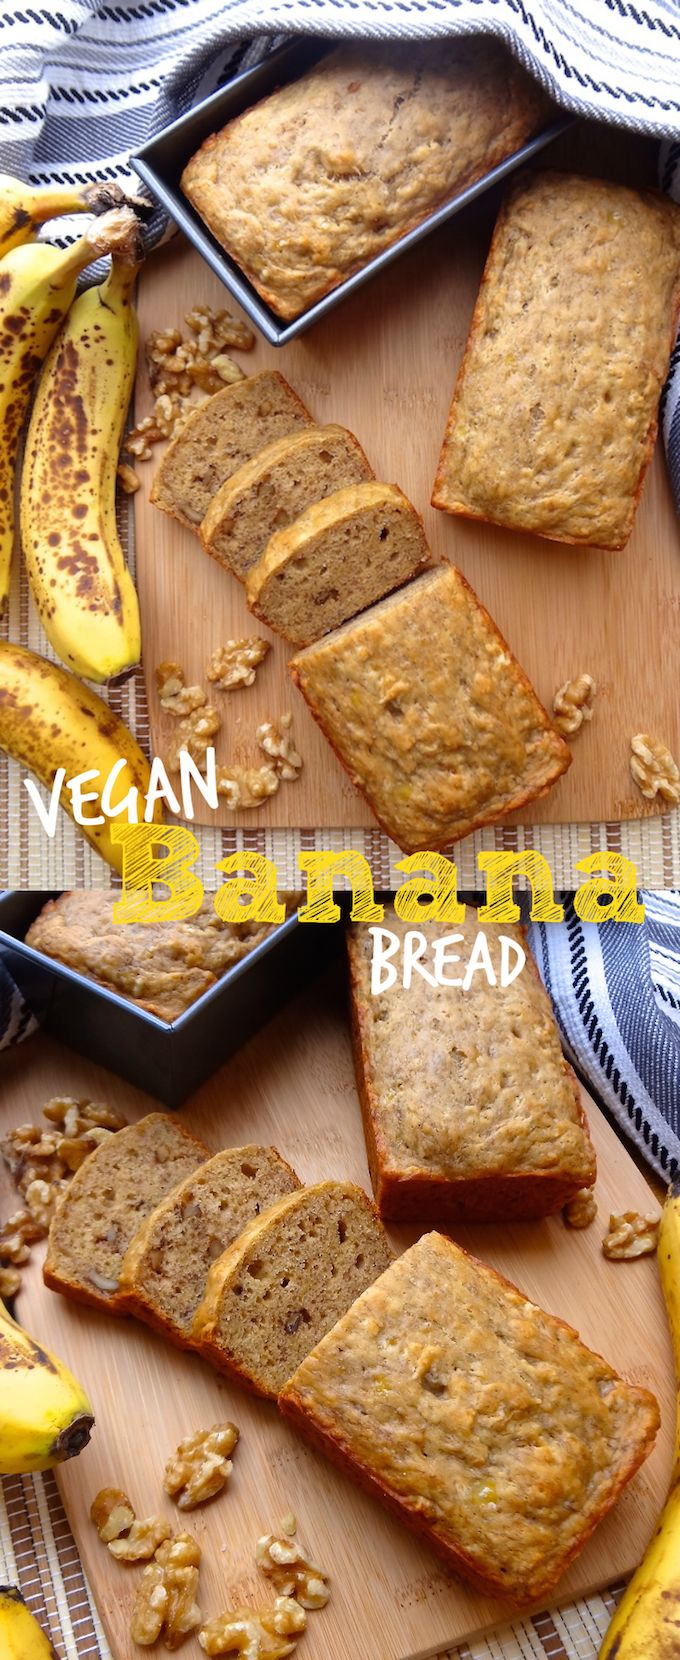 Super moist Vegan Banana Bread recipe - egg and dairy free. A few simple…